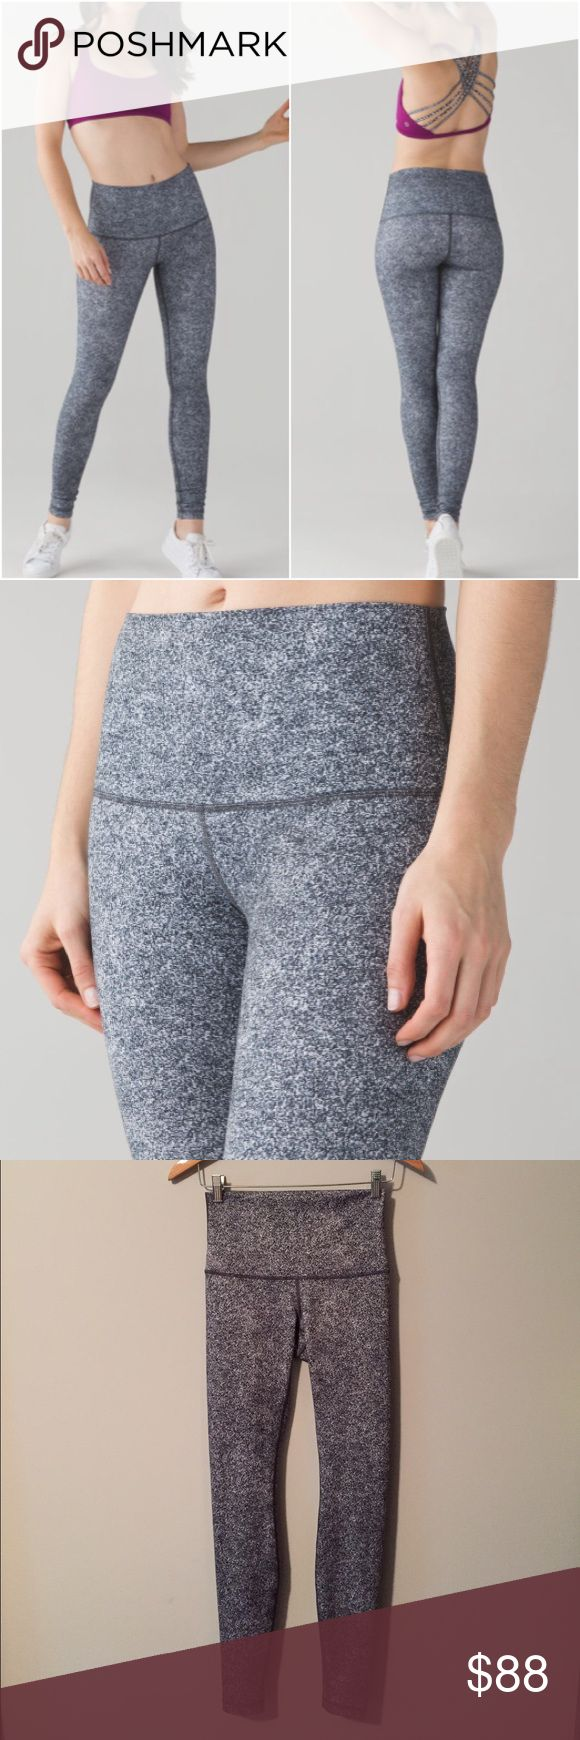 Lululemon Wunder Under Pant High Rise Lululemon Wunder Under Pant High Rise in Rio Mist White Black, perfect condition with no flaws (meaning no piling/seam damages/rips/holes/stains/odours/etc etc). Bundle to save 10% off ❤ lululemon athletica Pants Leggings